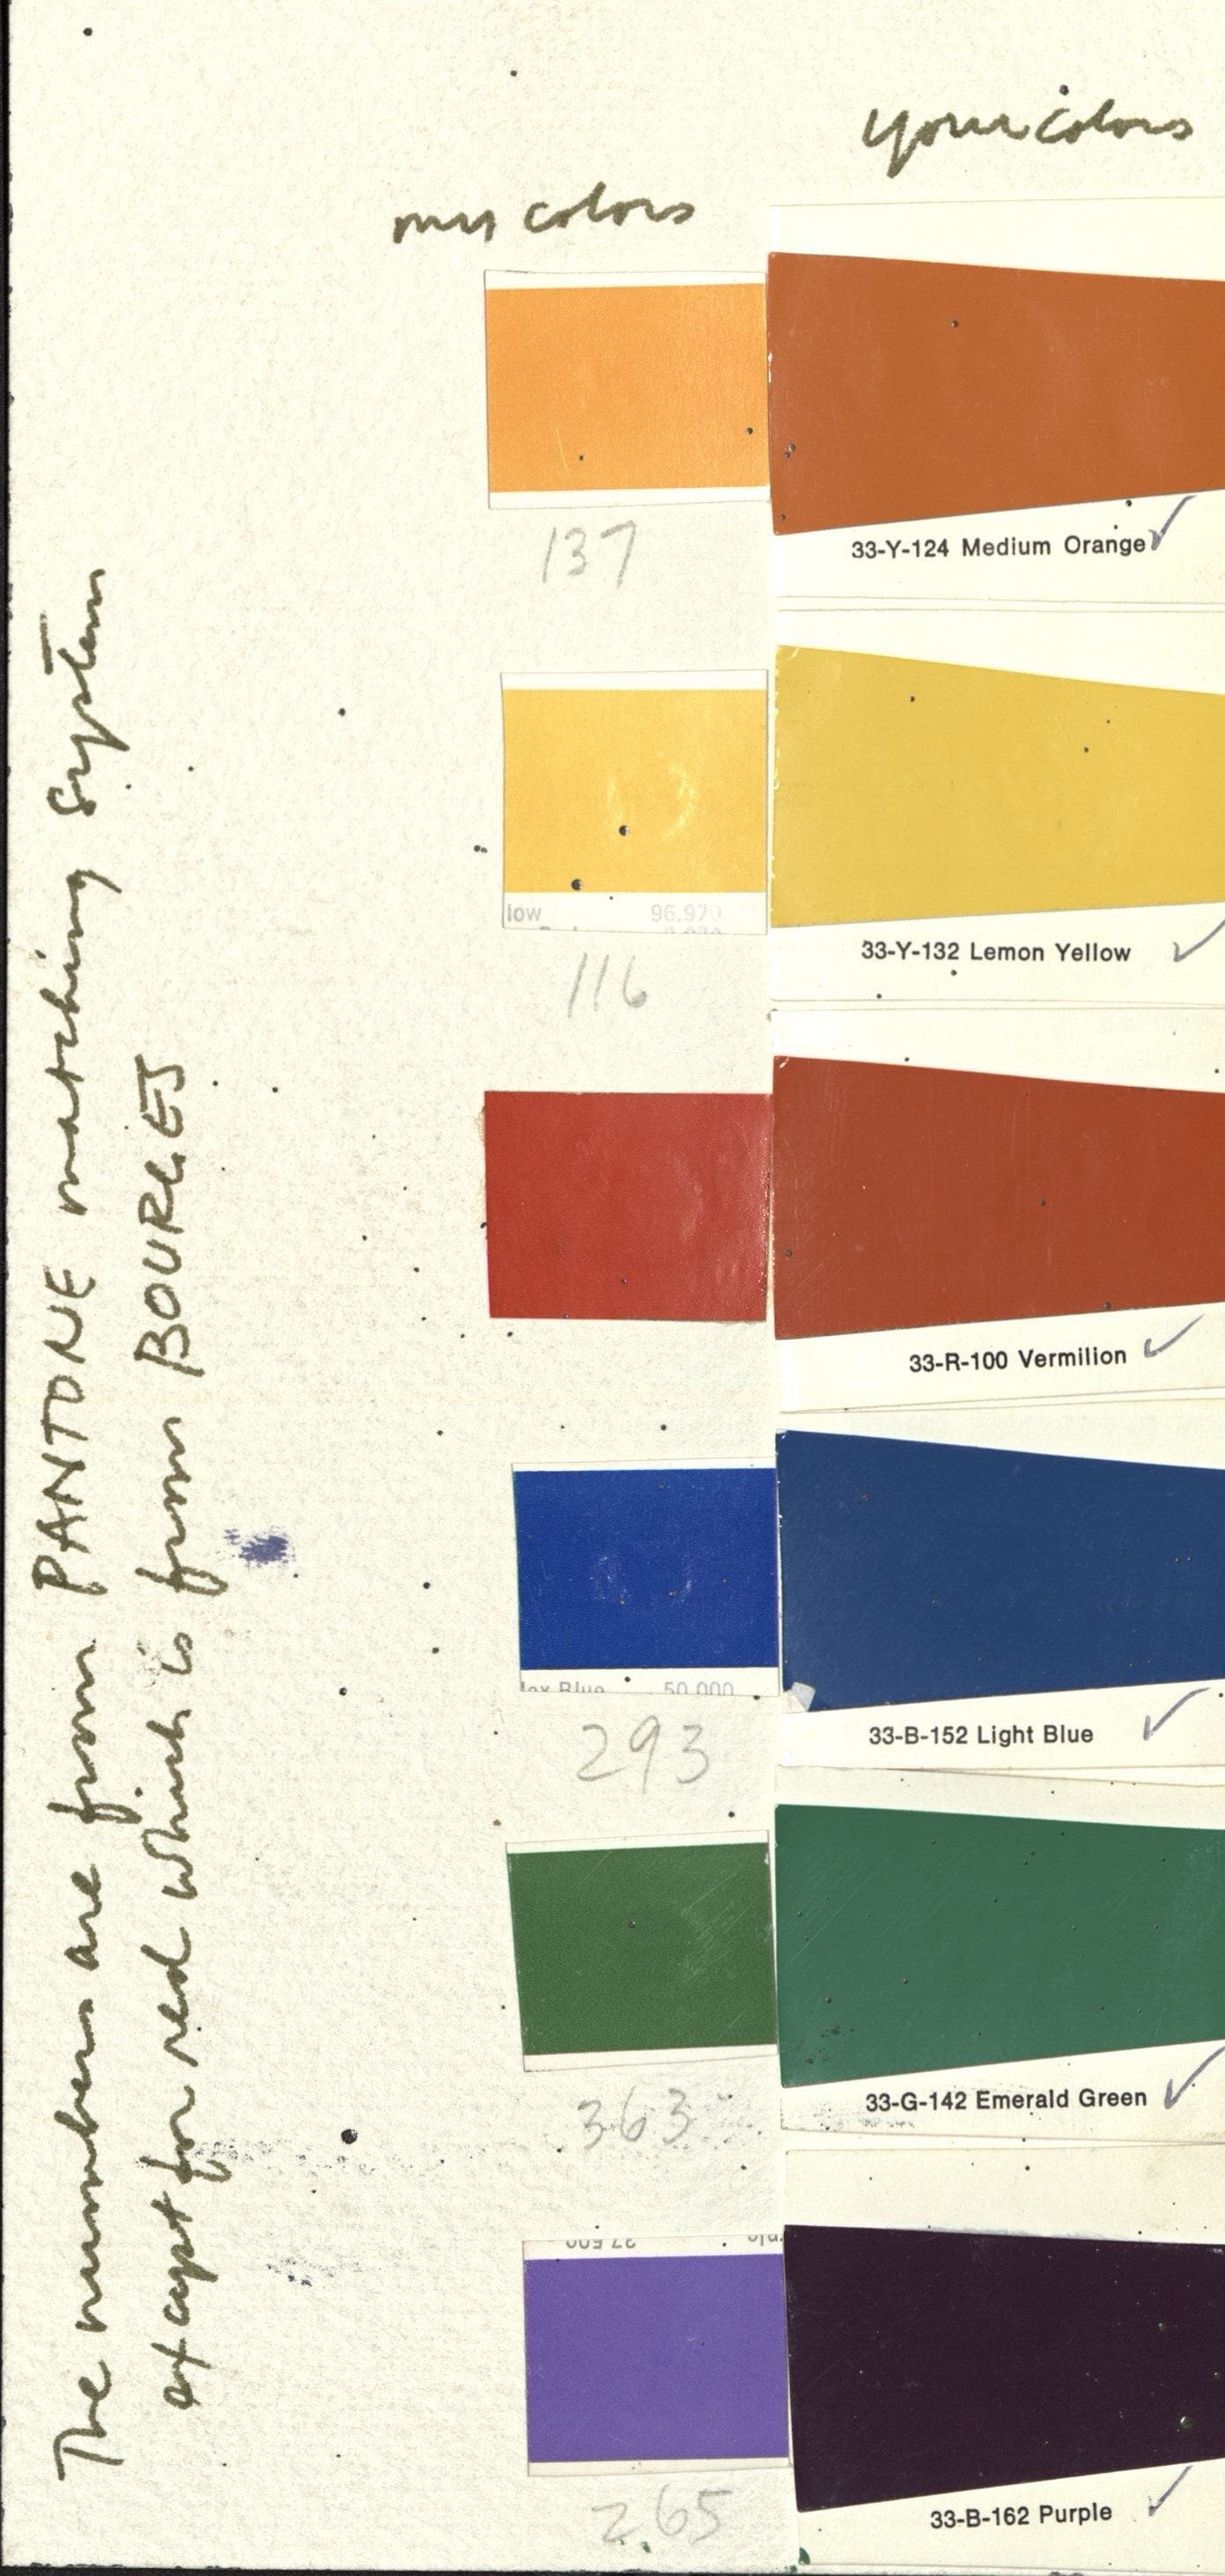 Color swatches from Rainbow gas tank